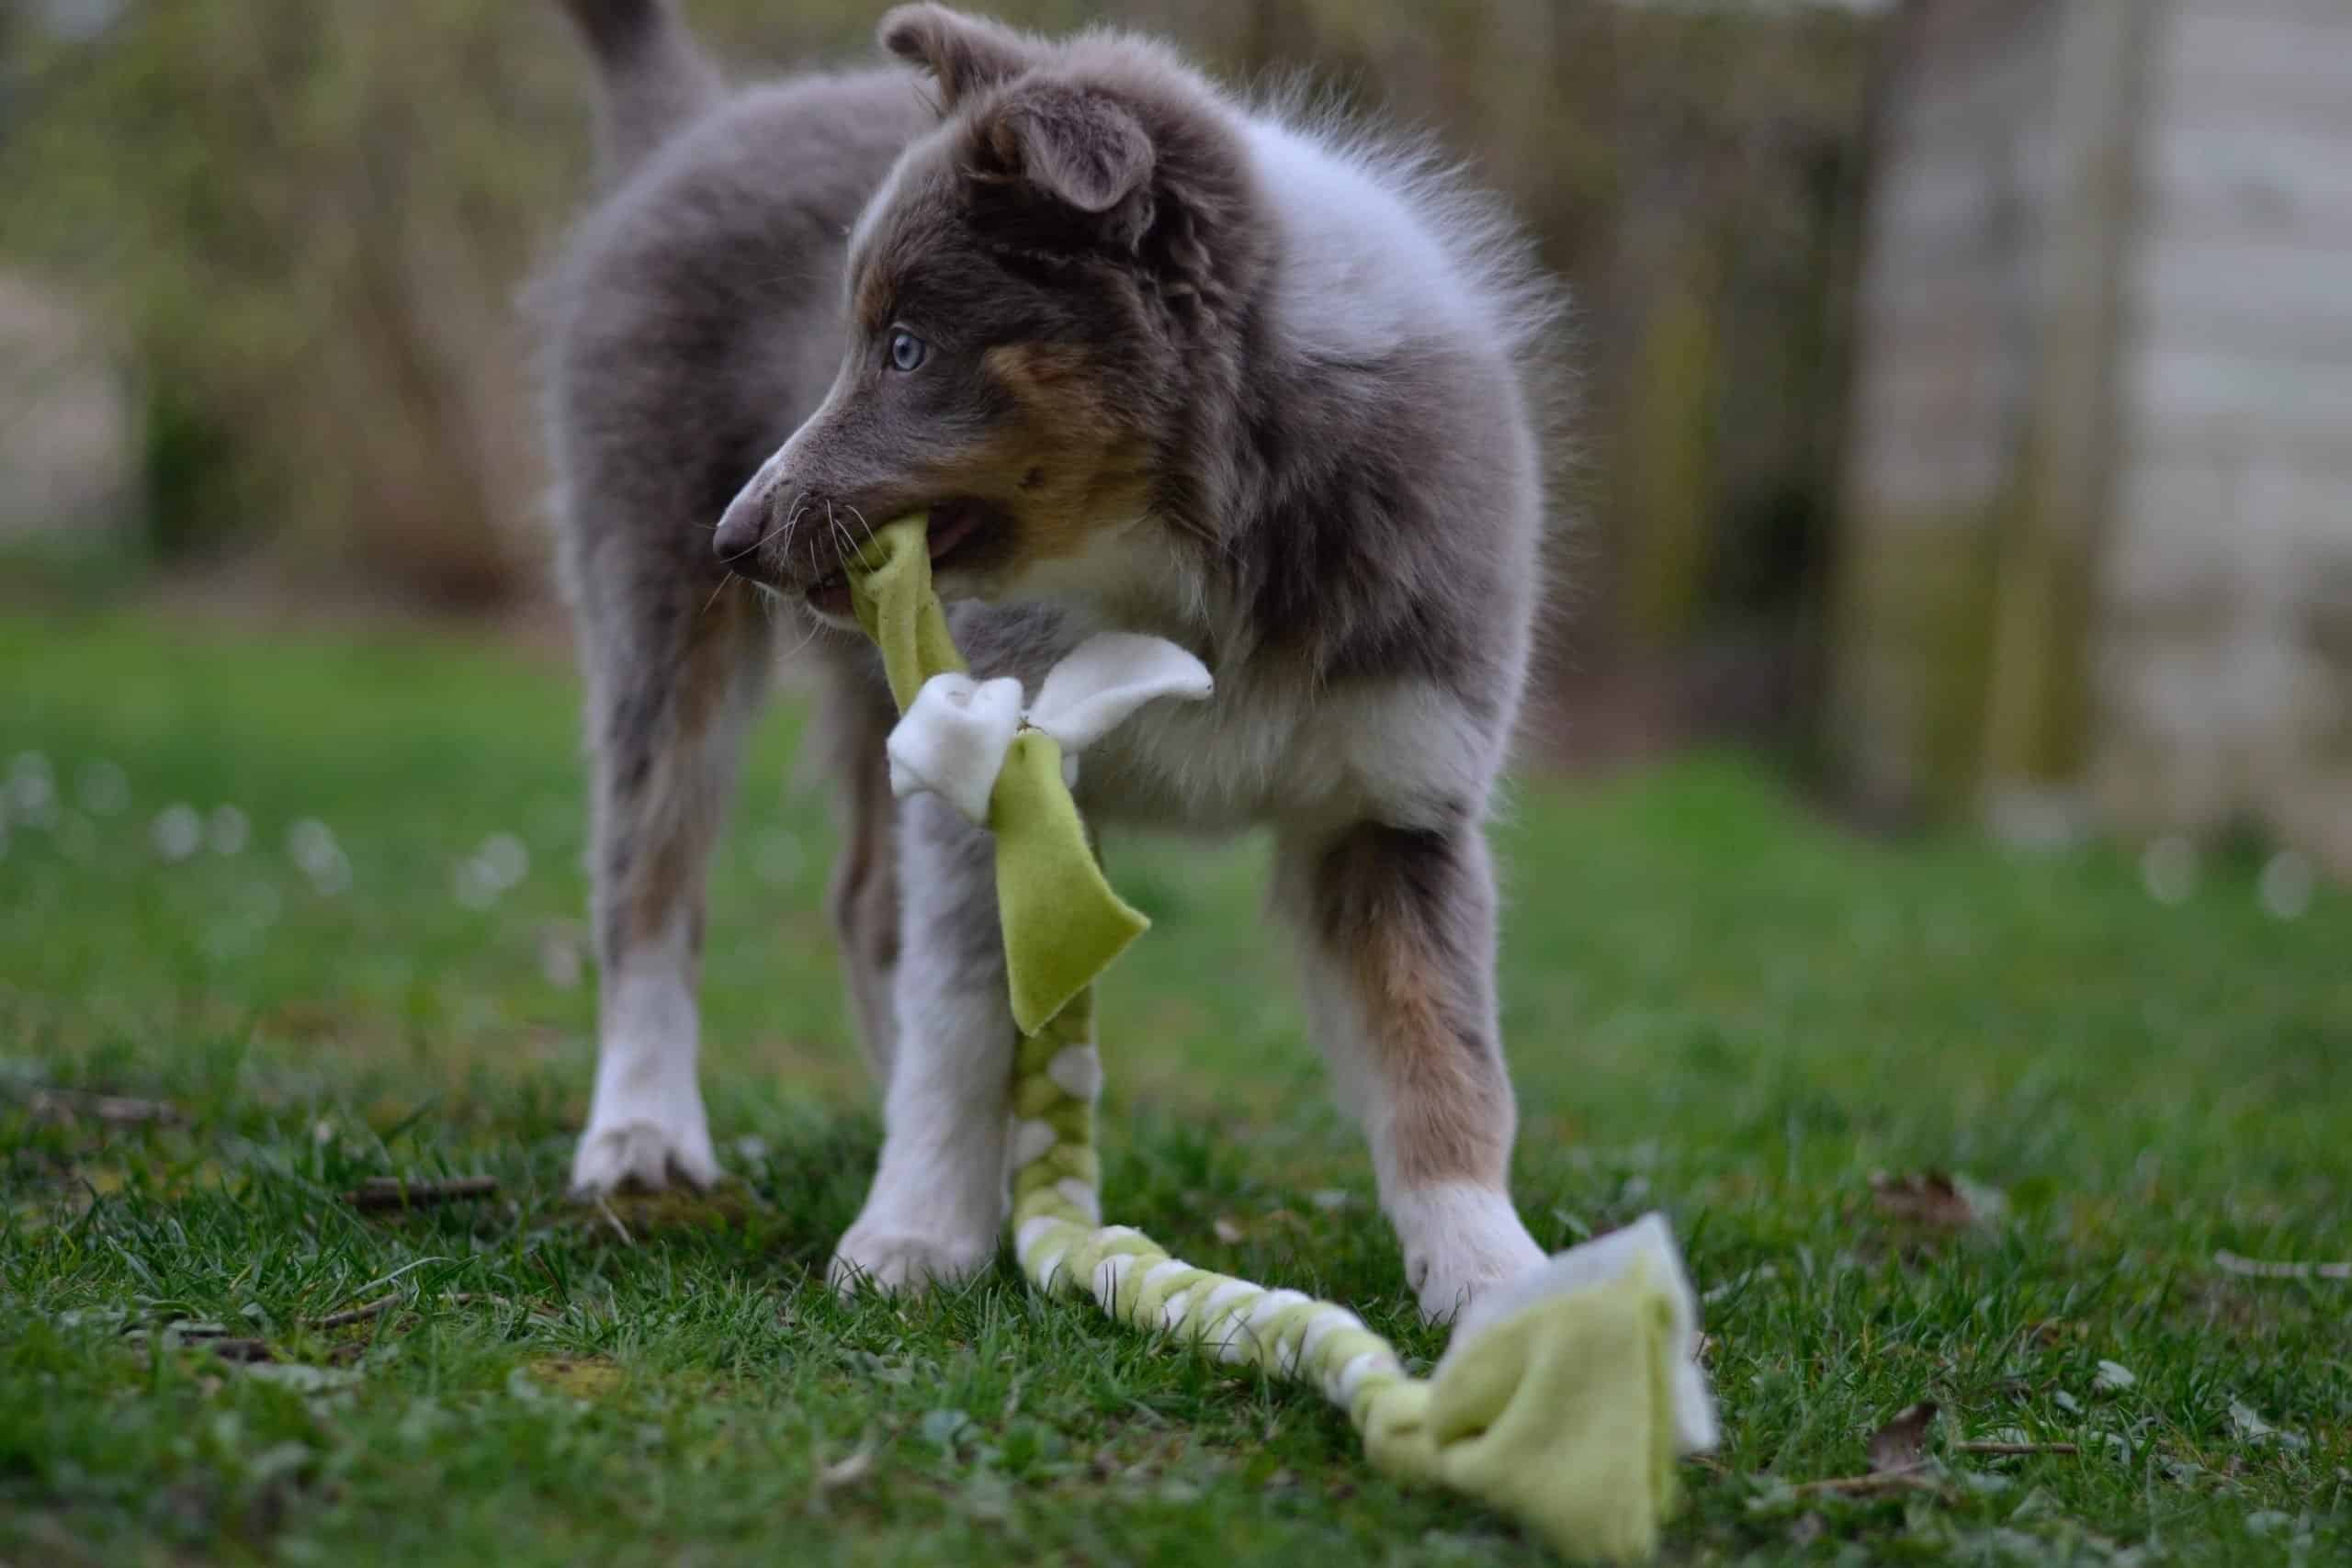 Puppy playing in yard with tug toy.